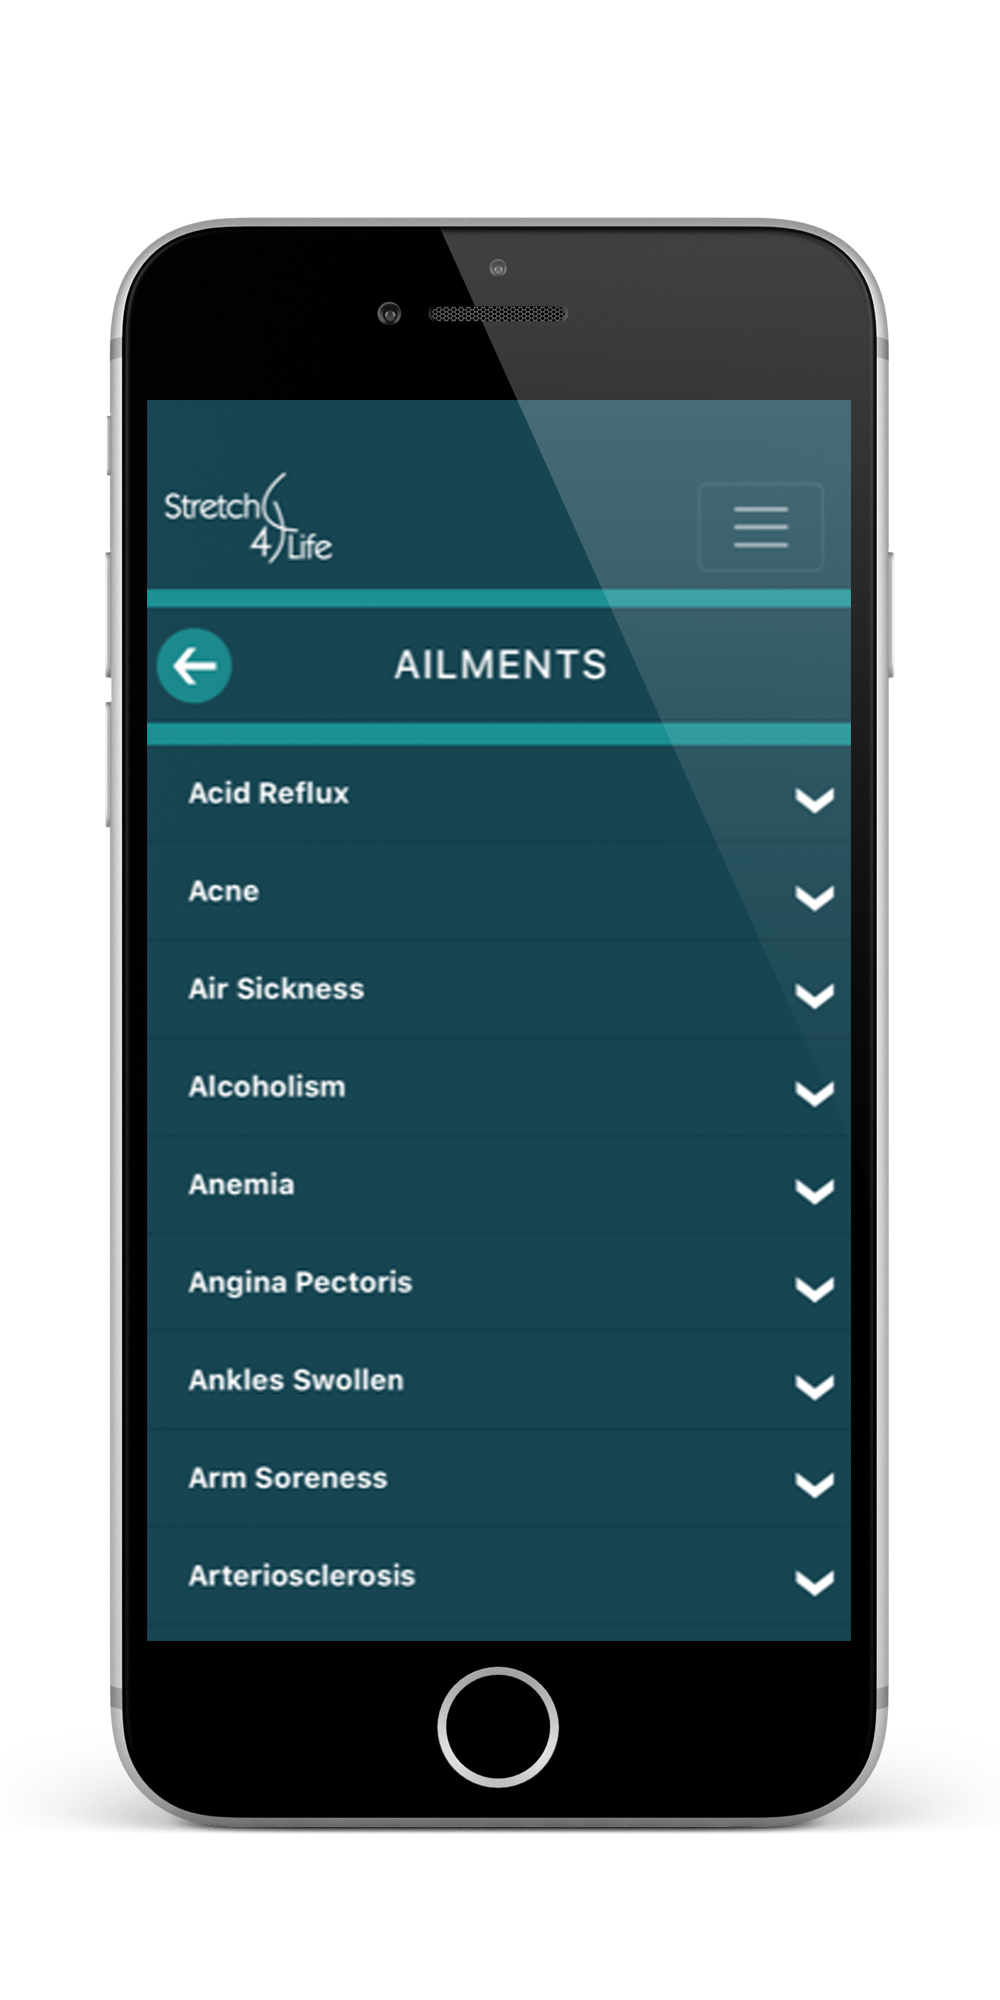 ailments app preview for stretch4life massage clinic